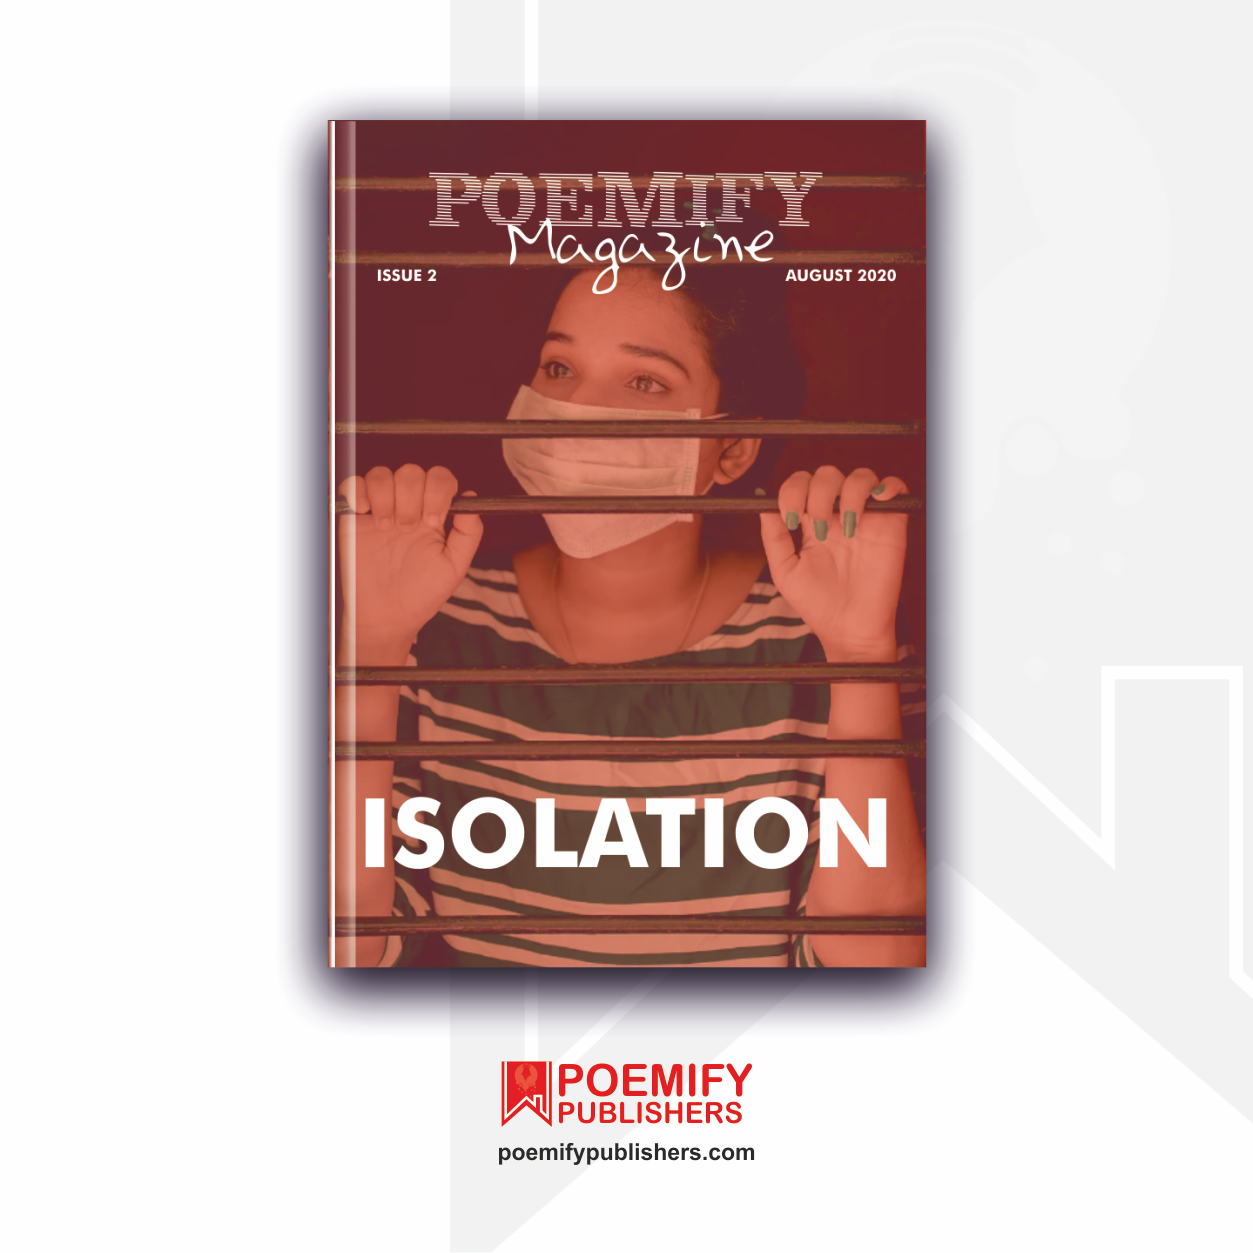 Poemify Publishers - Poemify Magazine - Isolation